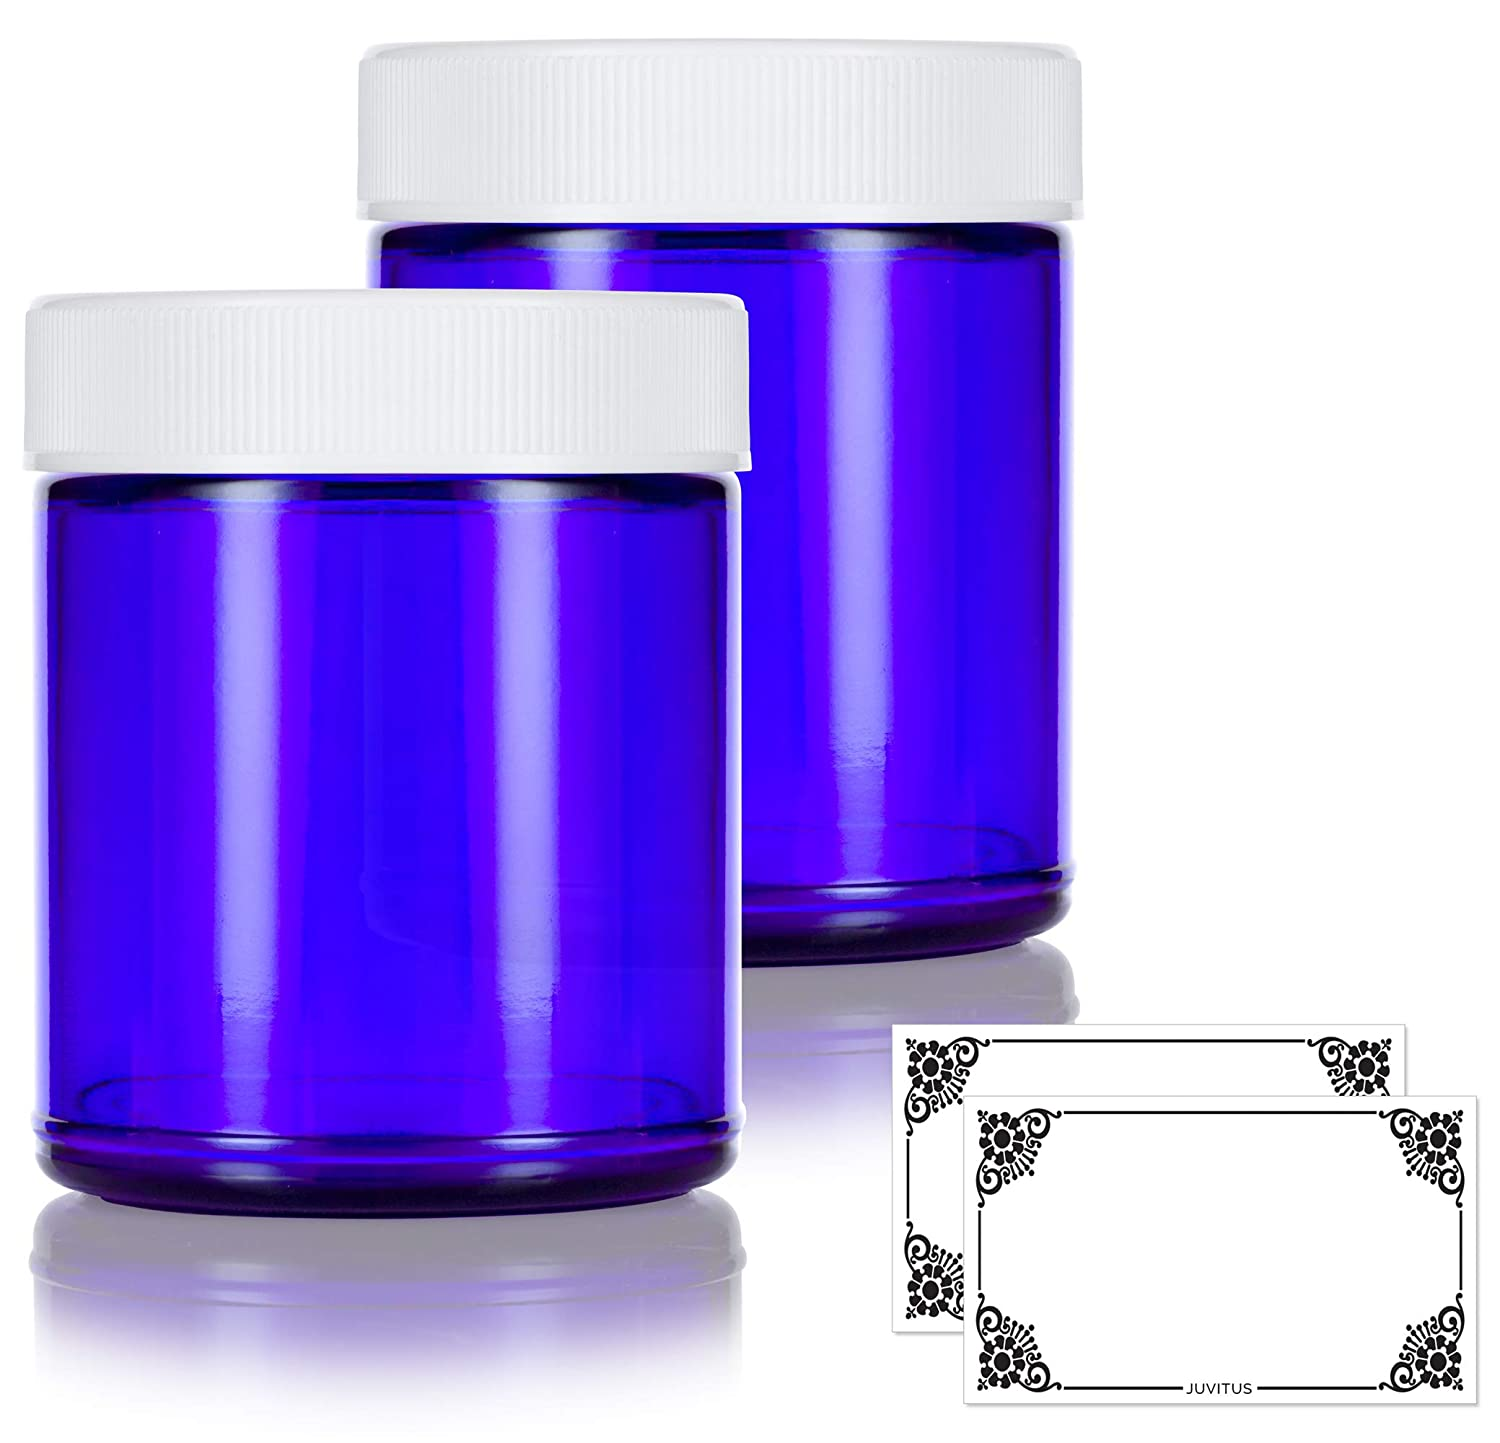 Cobalt Blue Glass Large Straight Sided Jar – 9 oz 270 ml 2 Pack Label – Airtight, Smell Proof, BPA Free Lids